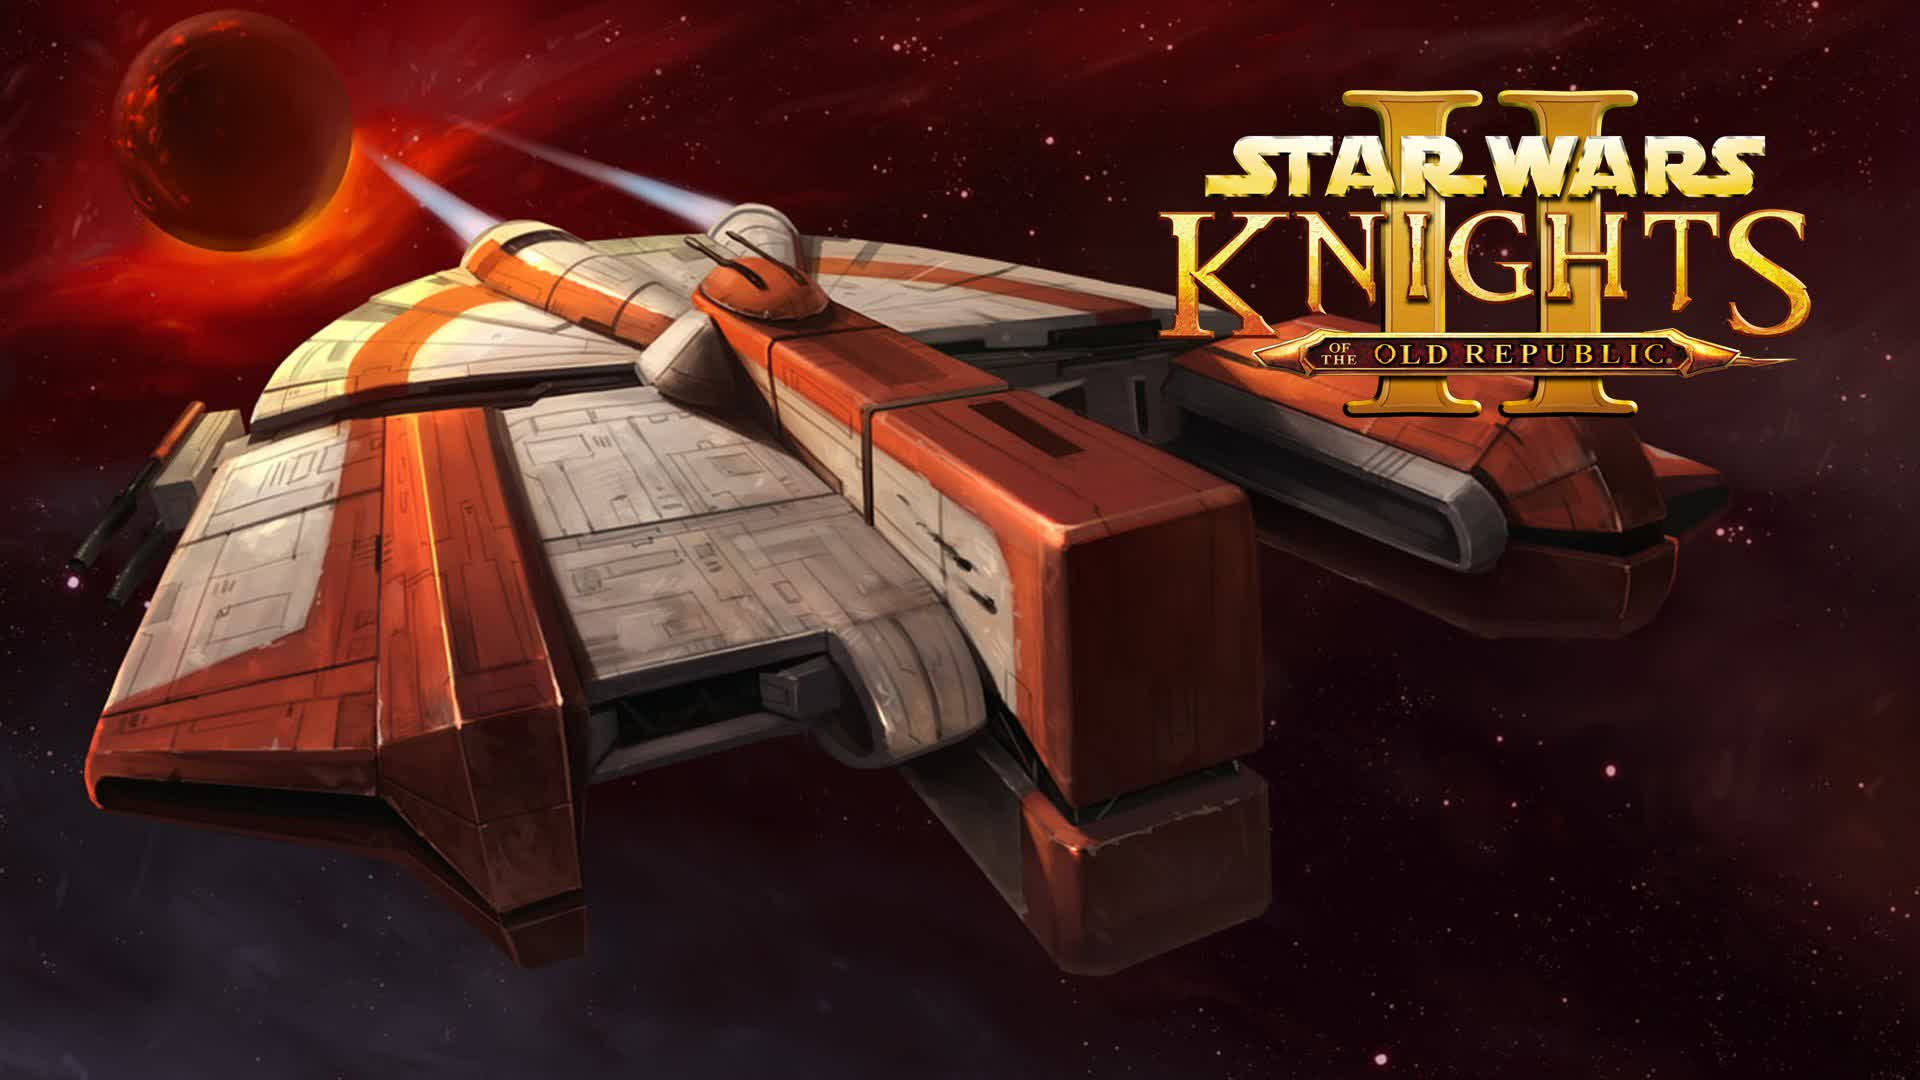 Classic Star Wars RPG 'KOTOR II' comes to Android and iOS on December 18